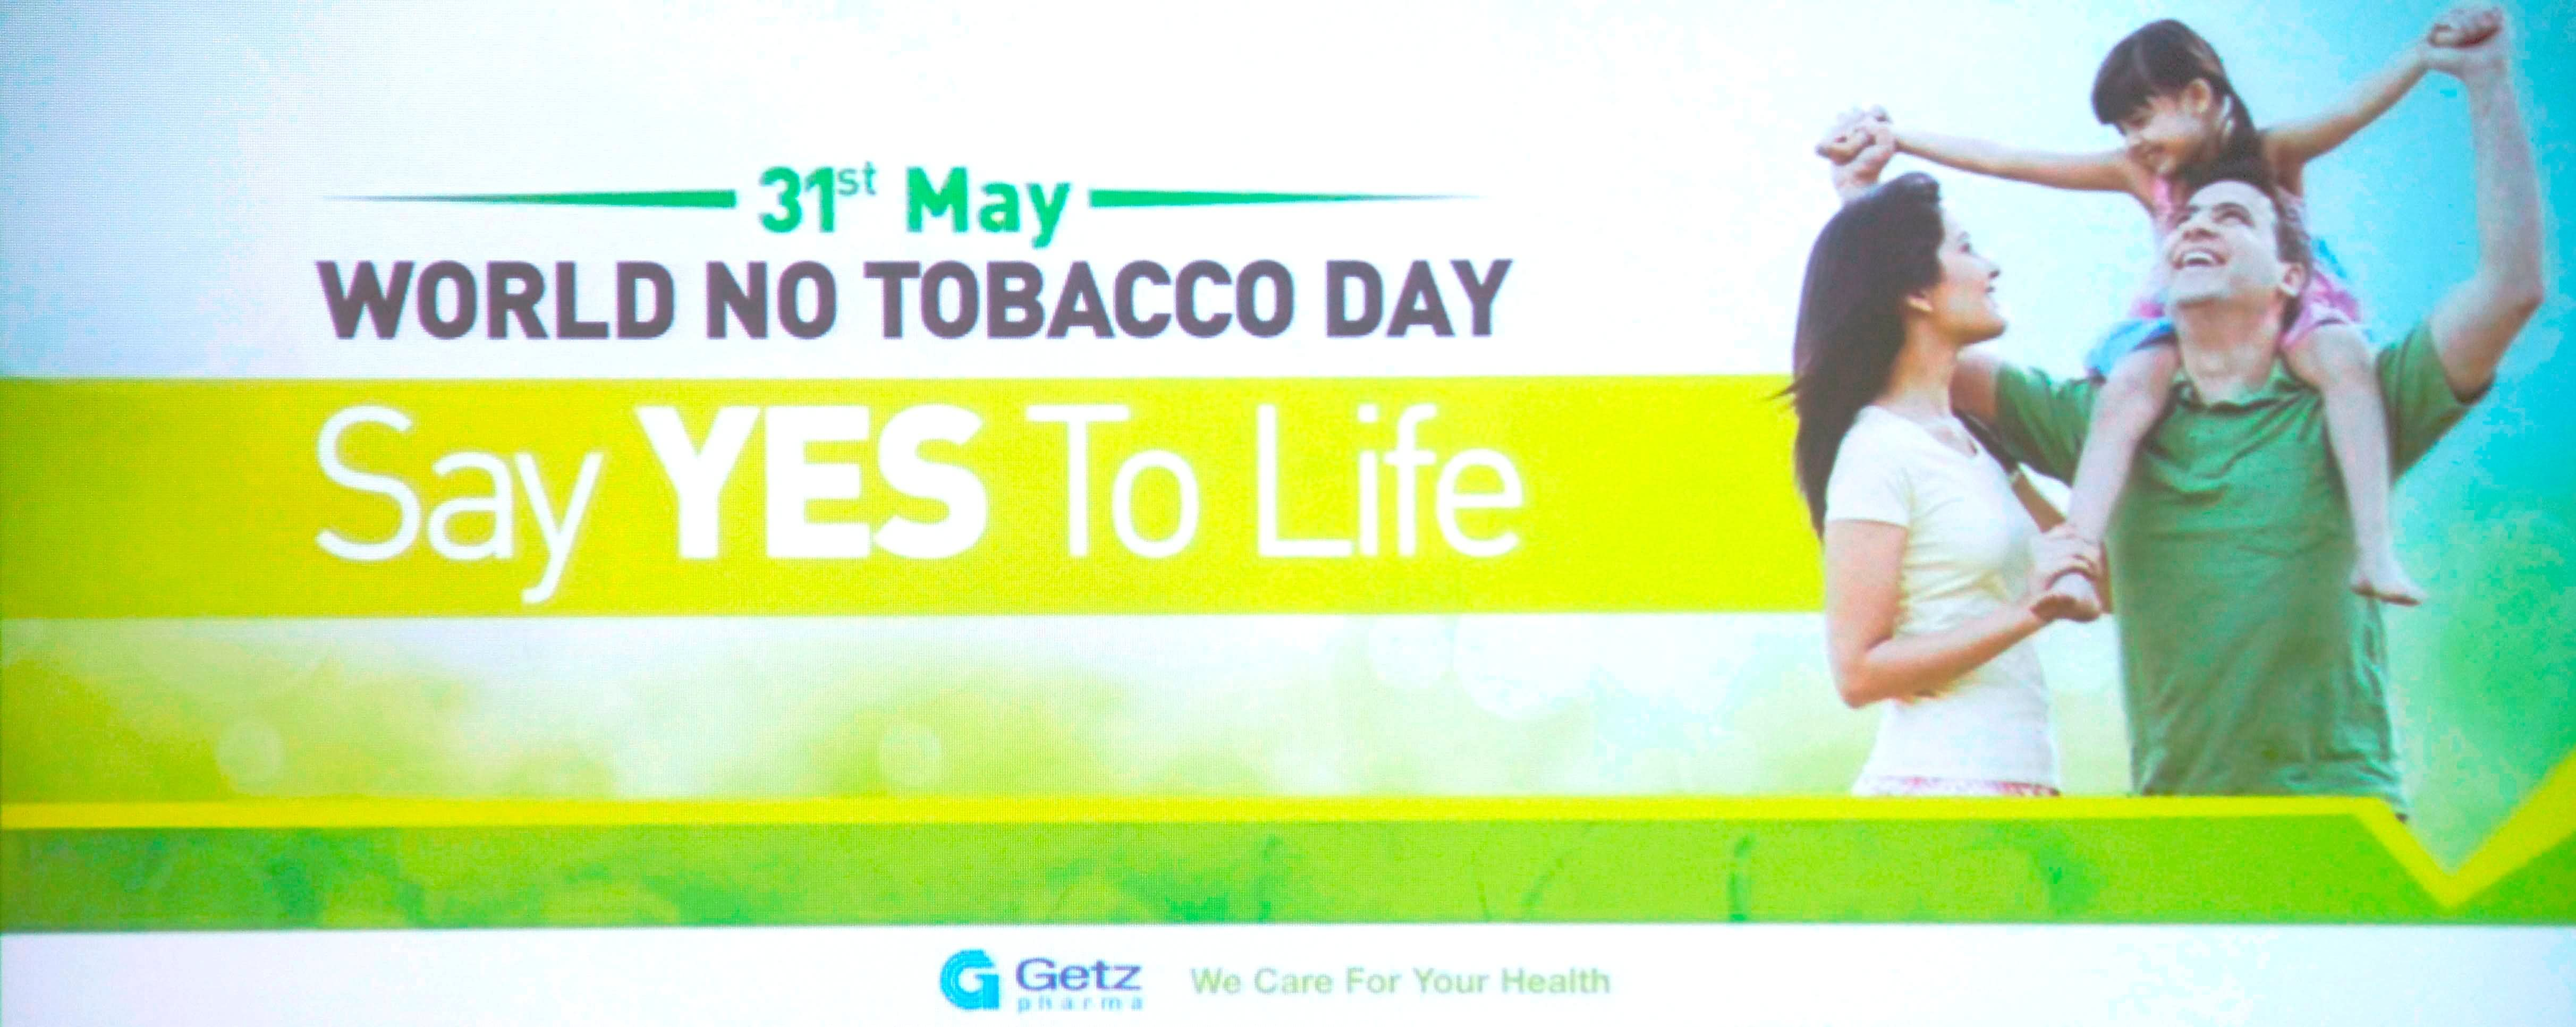 31st May World No Tobacco Day Say Yes To Life